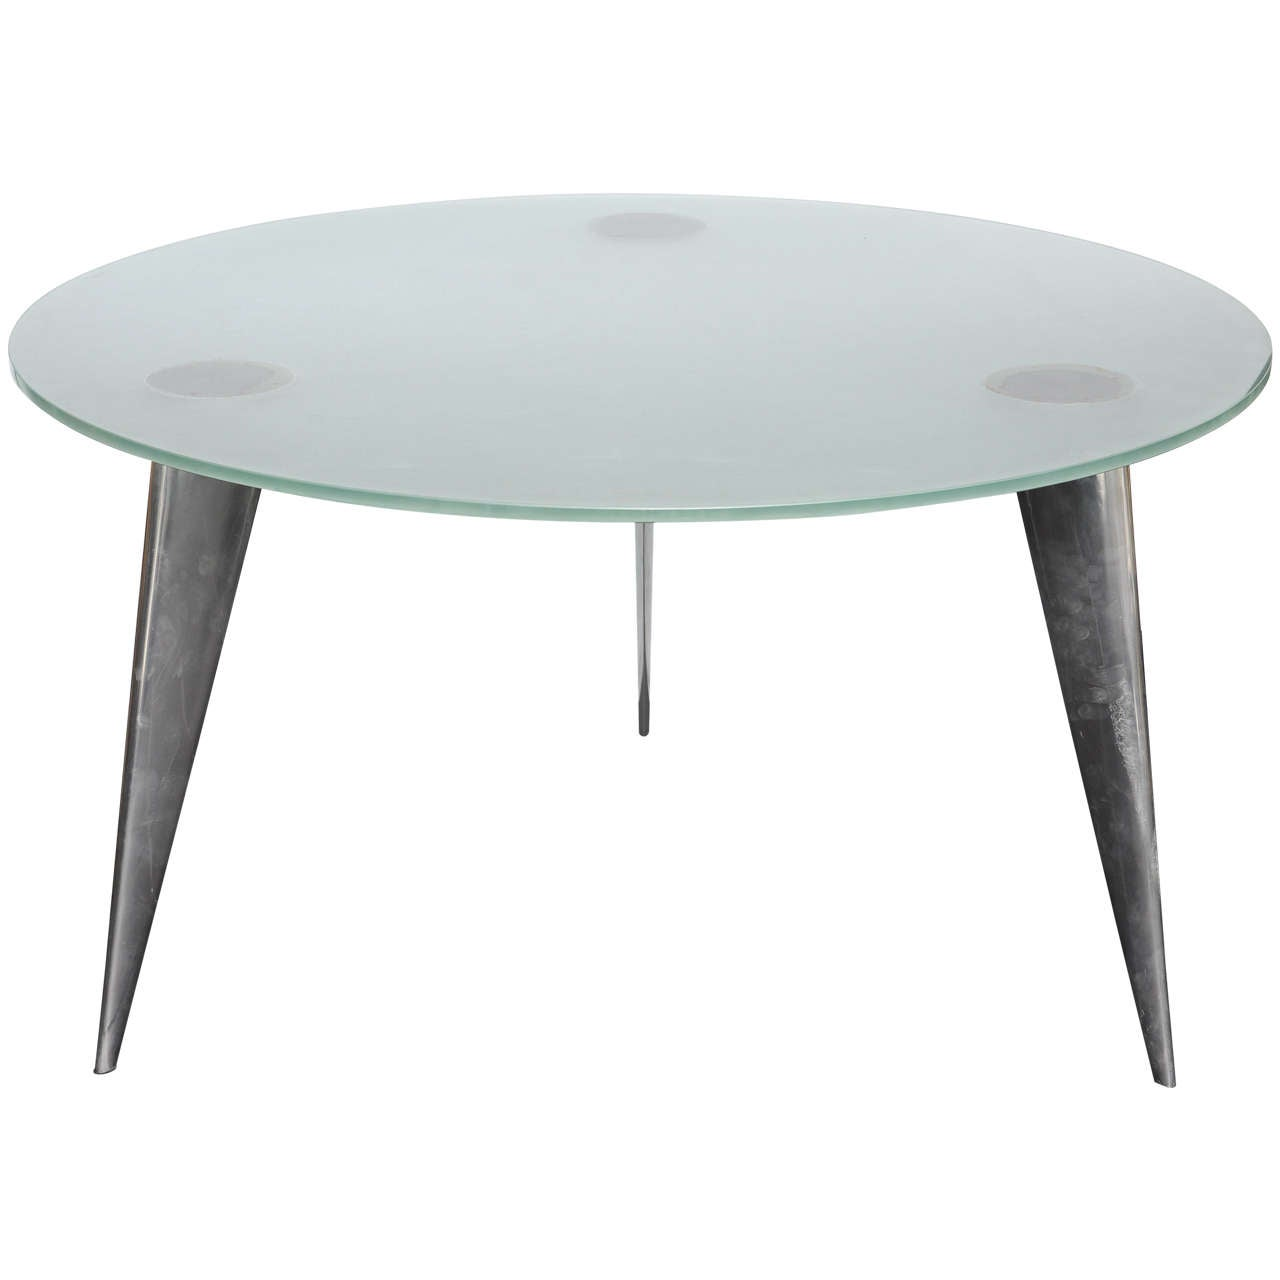 Philippe starck and aleph driade m serie lang dining table at 1stdibs for Philippe starck tables